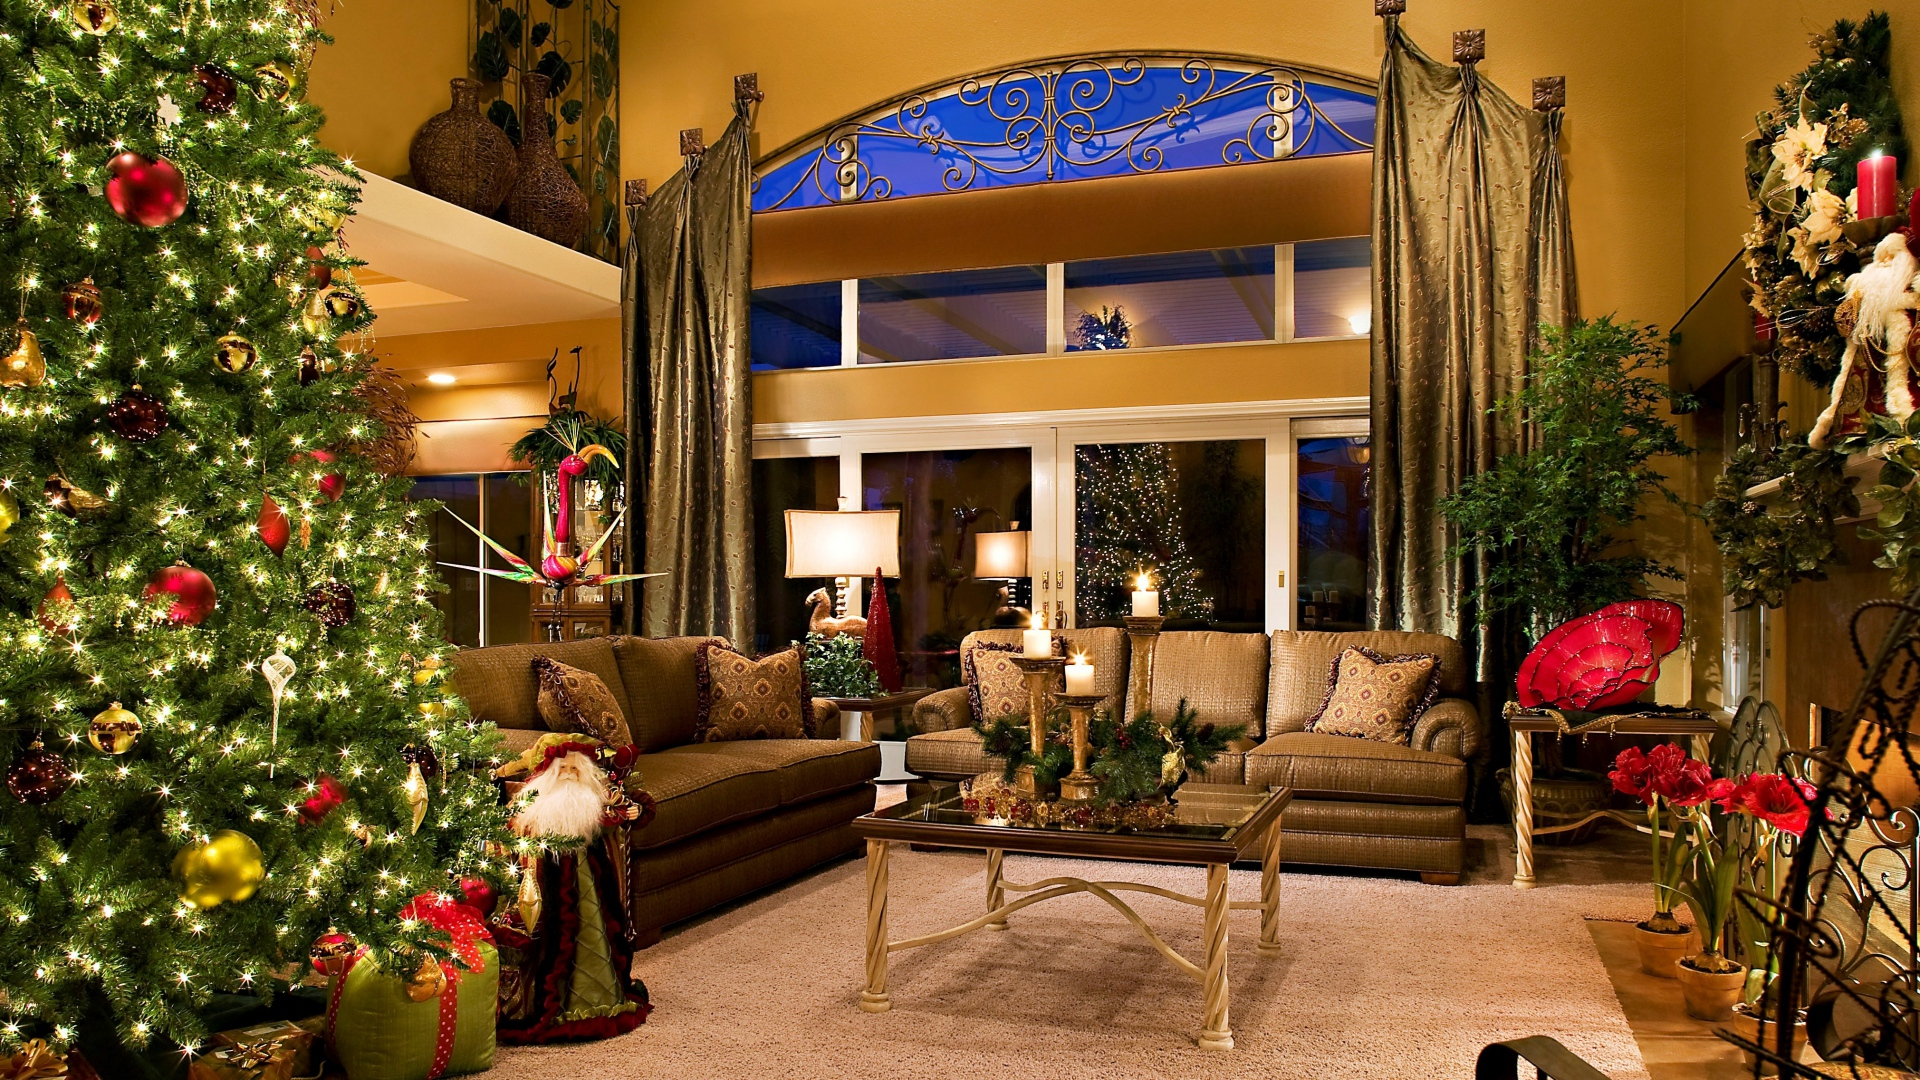 Herunterladen 1920x1080 full hd hintergrundbilder for Living room xmas ideas